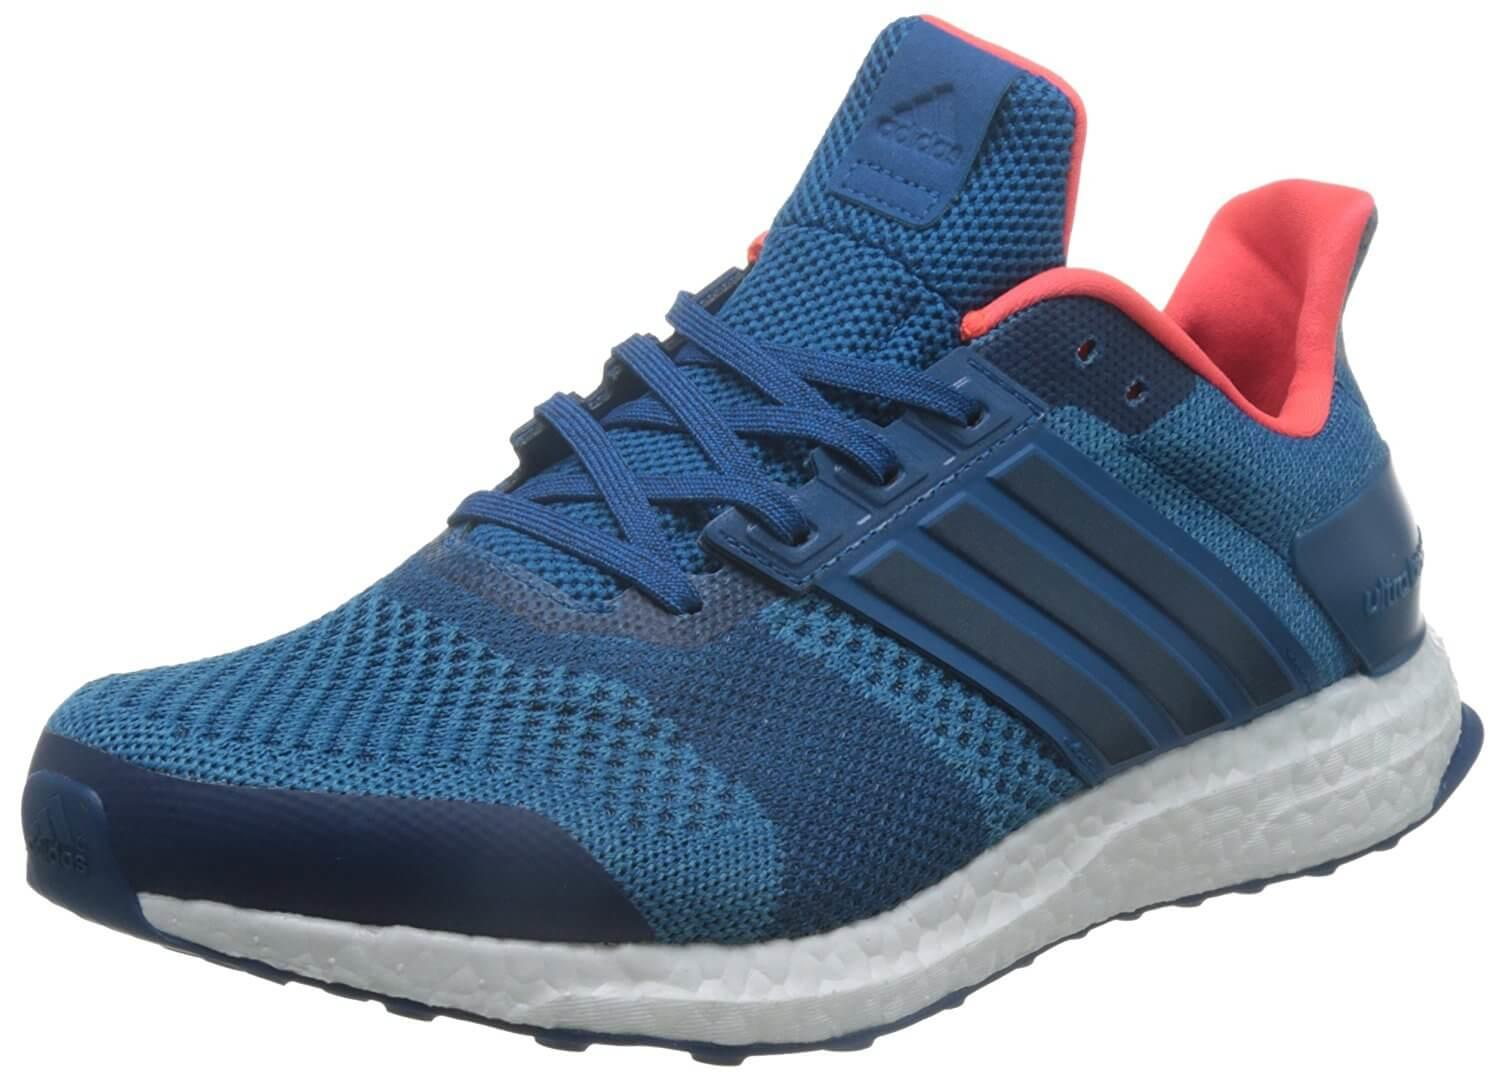 964a6d0ee6e9f Adidas Ultra Boost ST Review - Buy or Not in May 2019